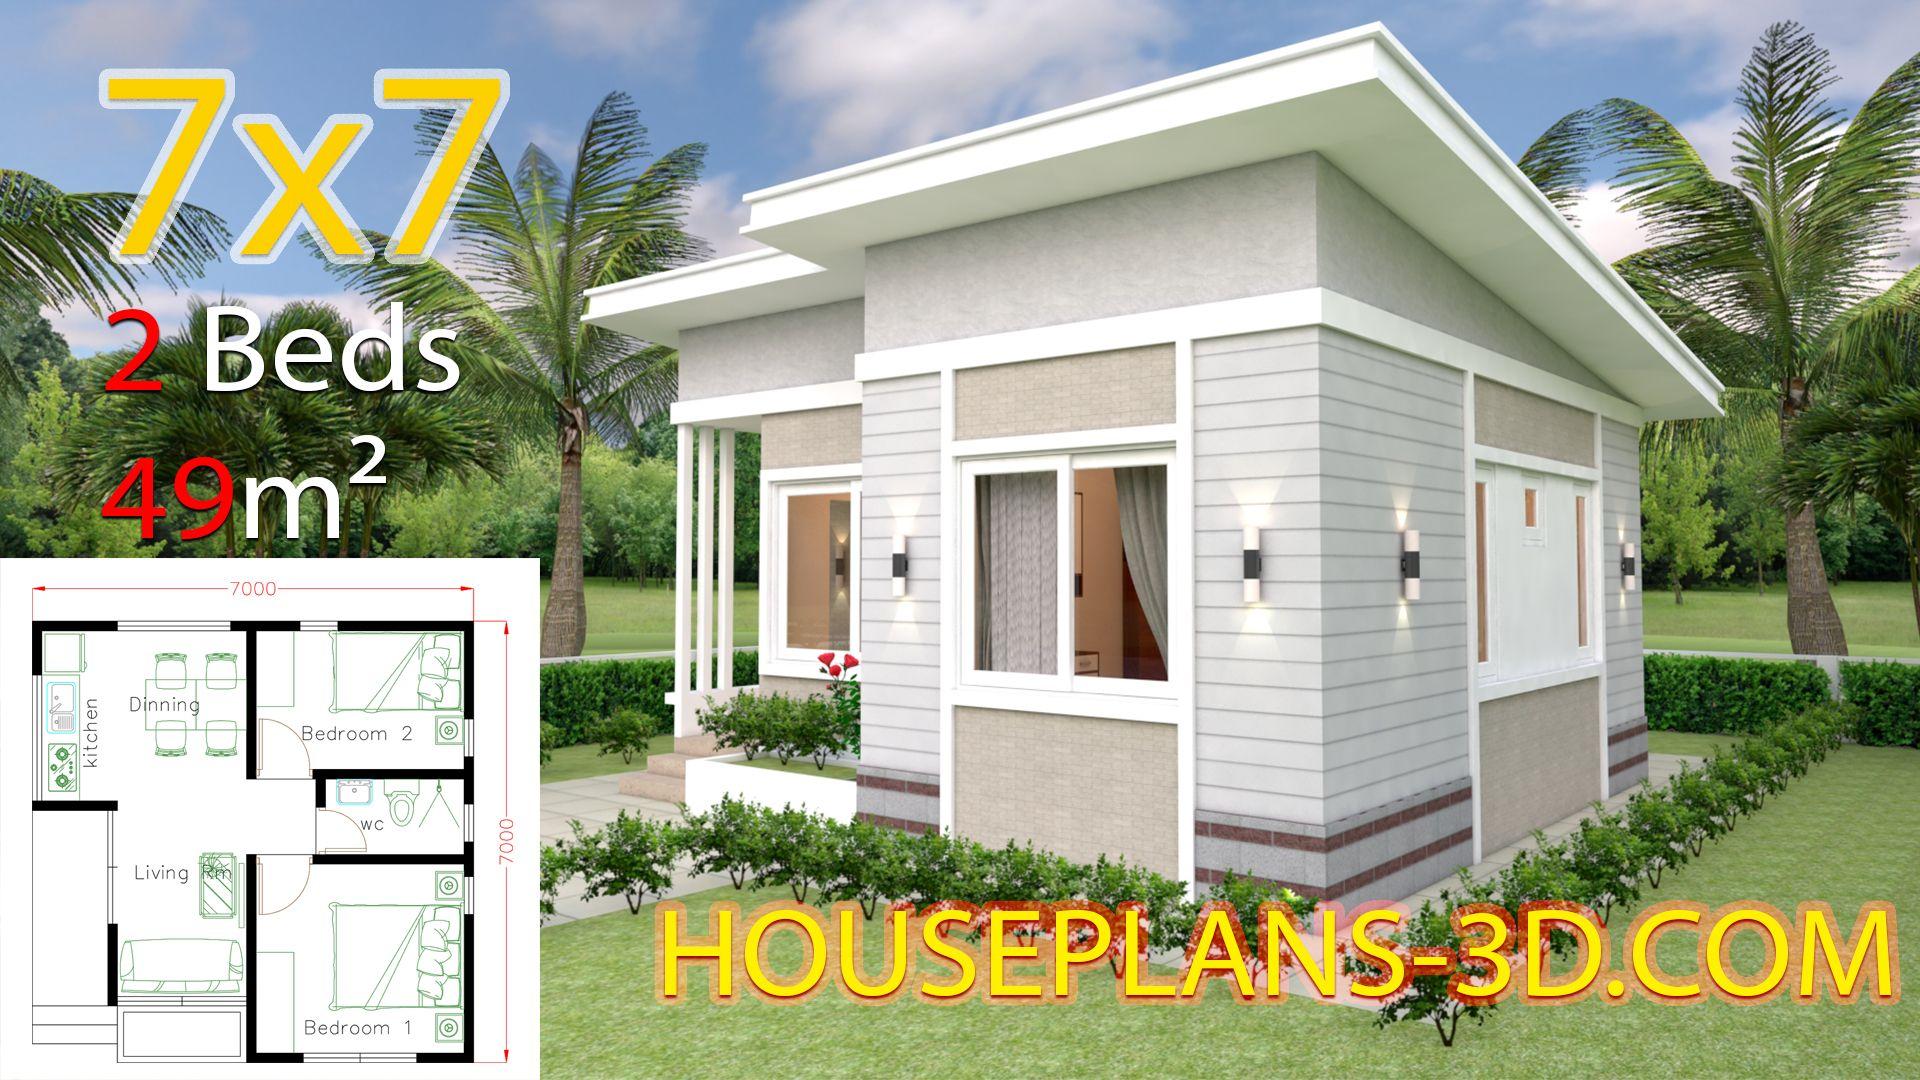 Small House Design 7x7 with 2 Bedrooms - House Plans 3D in 2020 ...